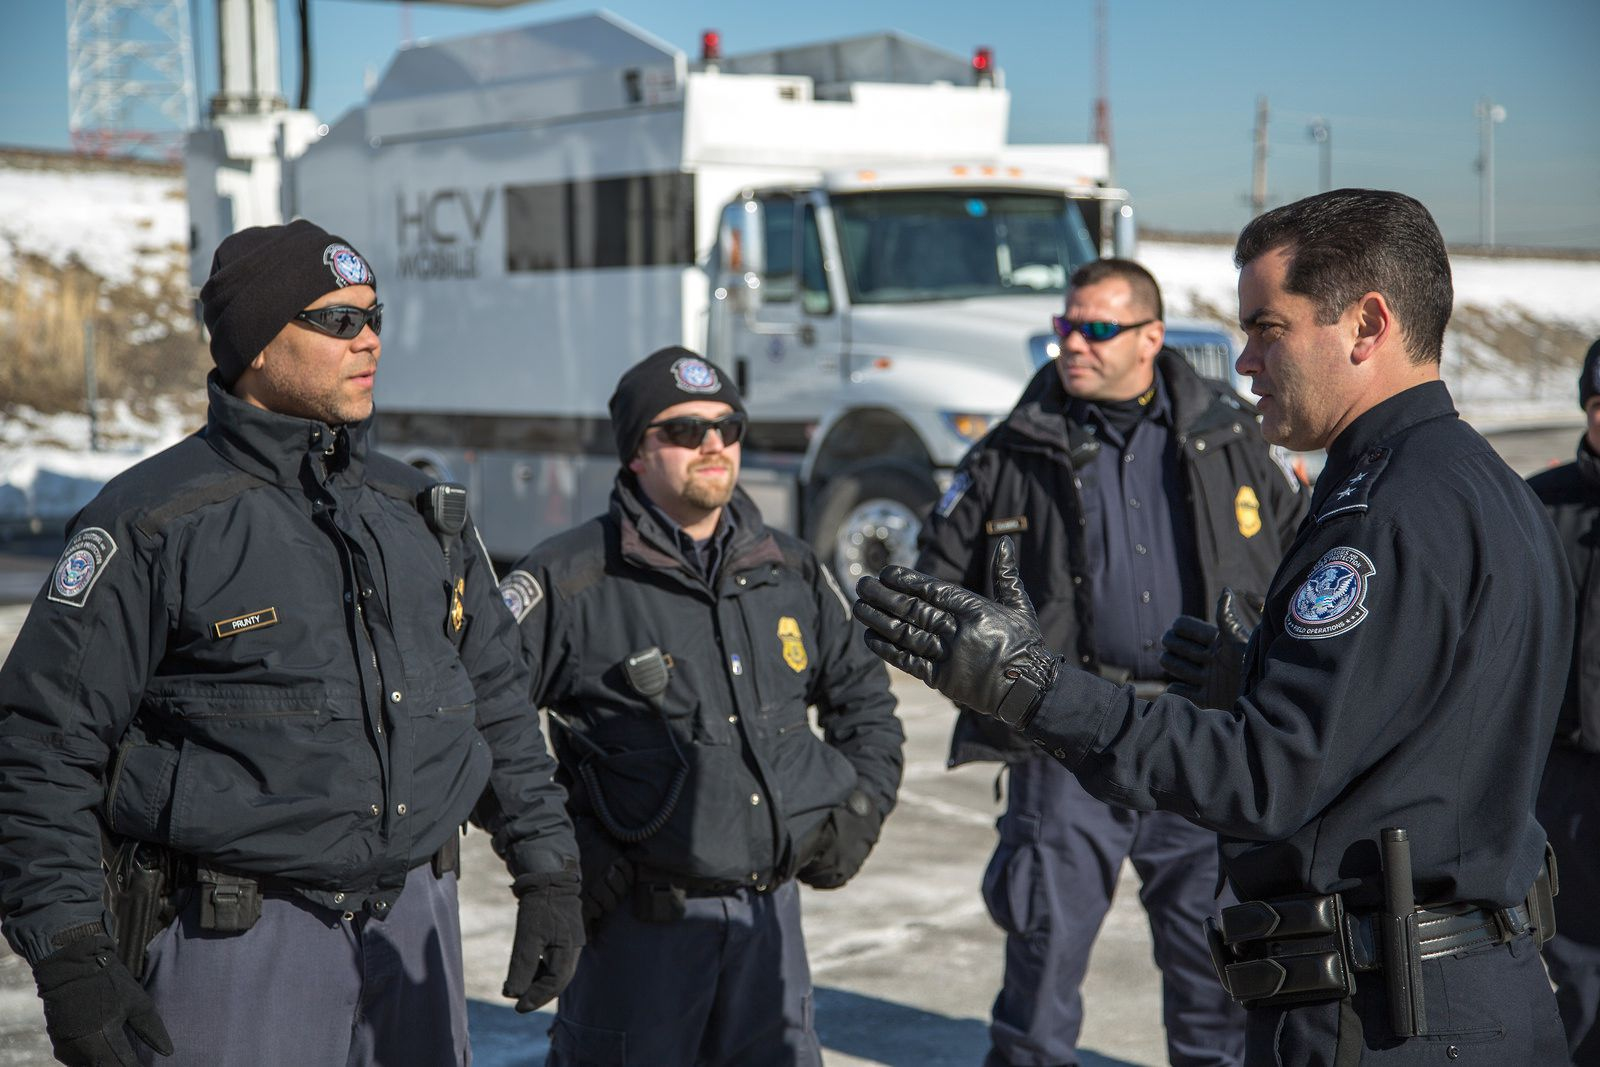 Customs And Border Protection Officer Job Information